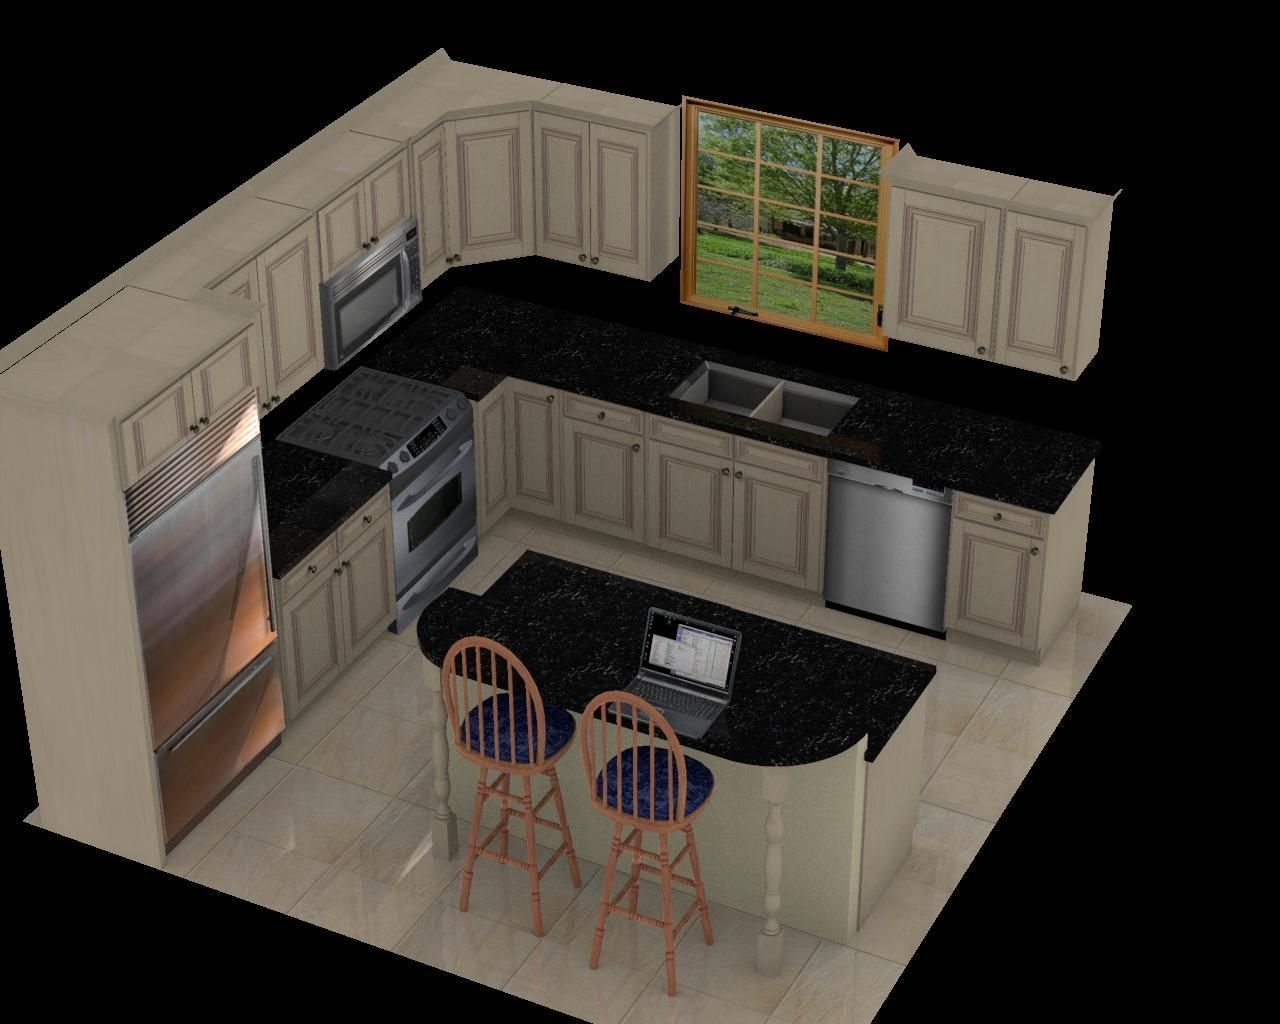 Luxury 12x12 Kitchen Layout With Island 51 For With 12x12 Kitchen Layout With Island Kitchen Design Plans Kitchen Layout Plans Kitchen Designs Layout